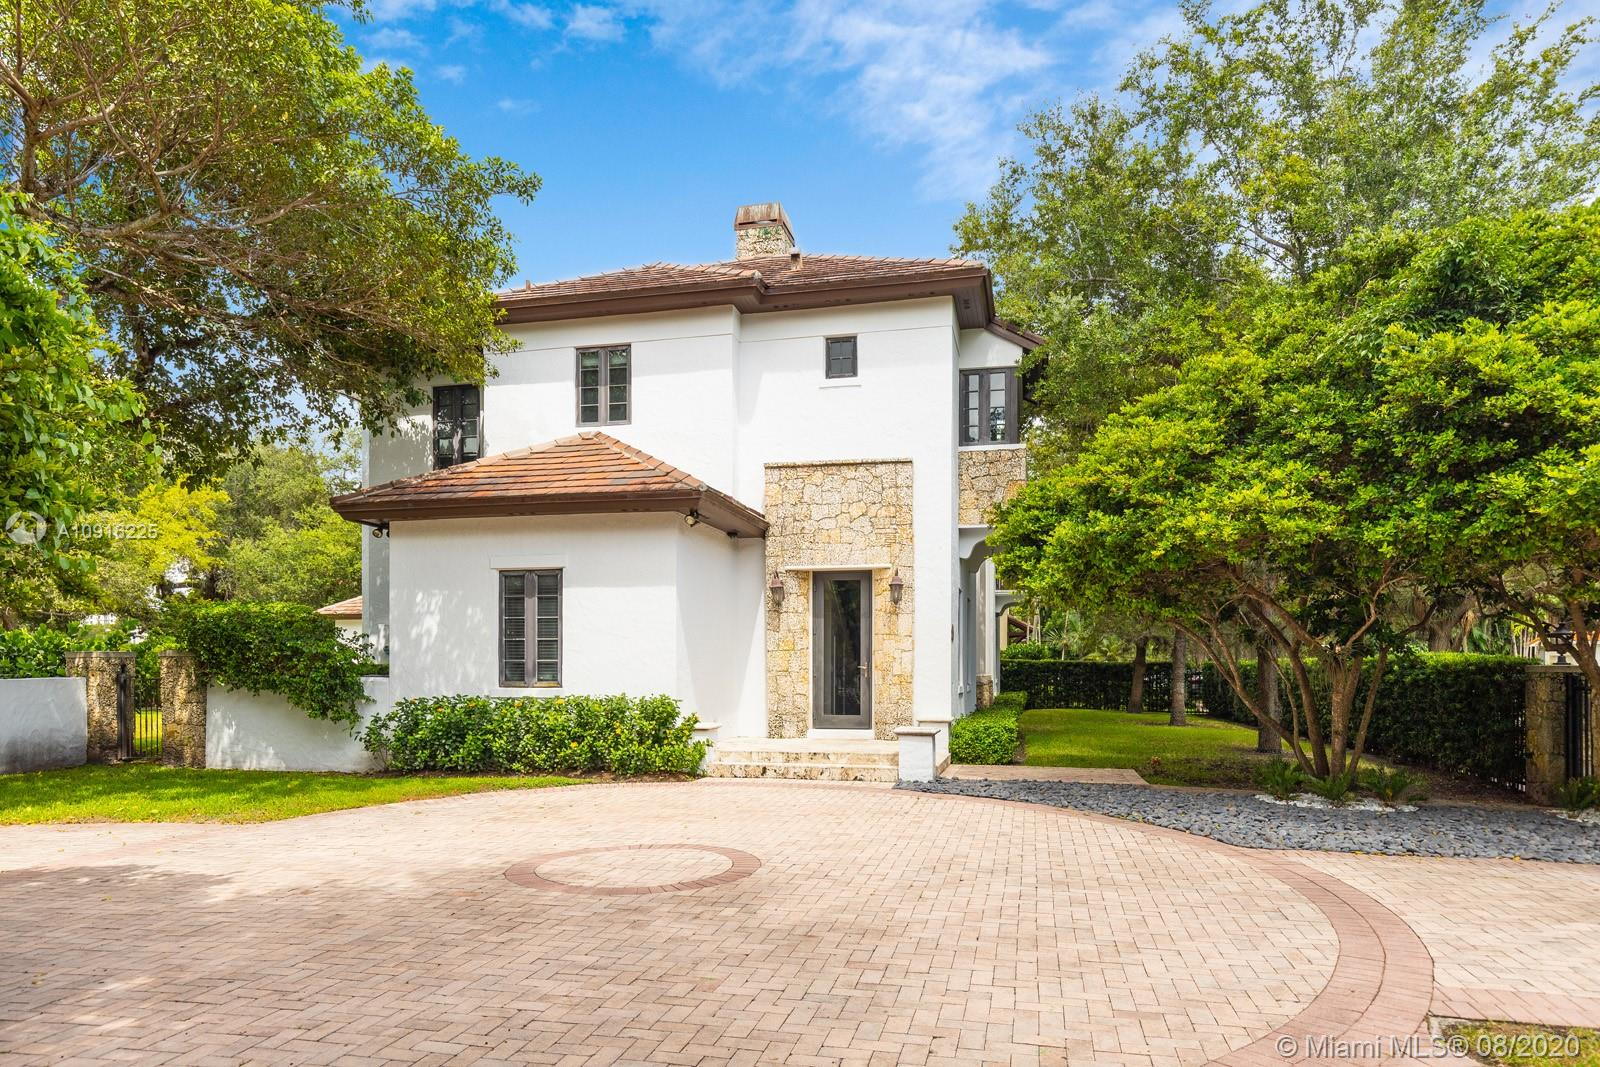 Details for 475 Amalfi Ave, Coral Gables, FL 33146